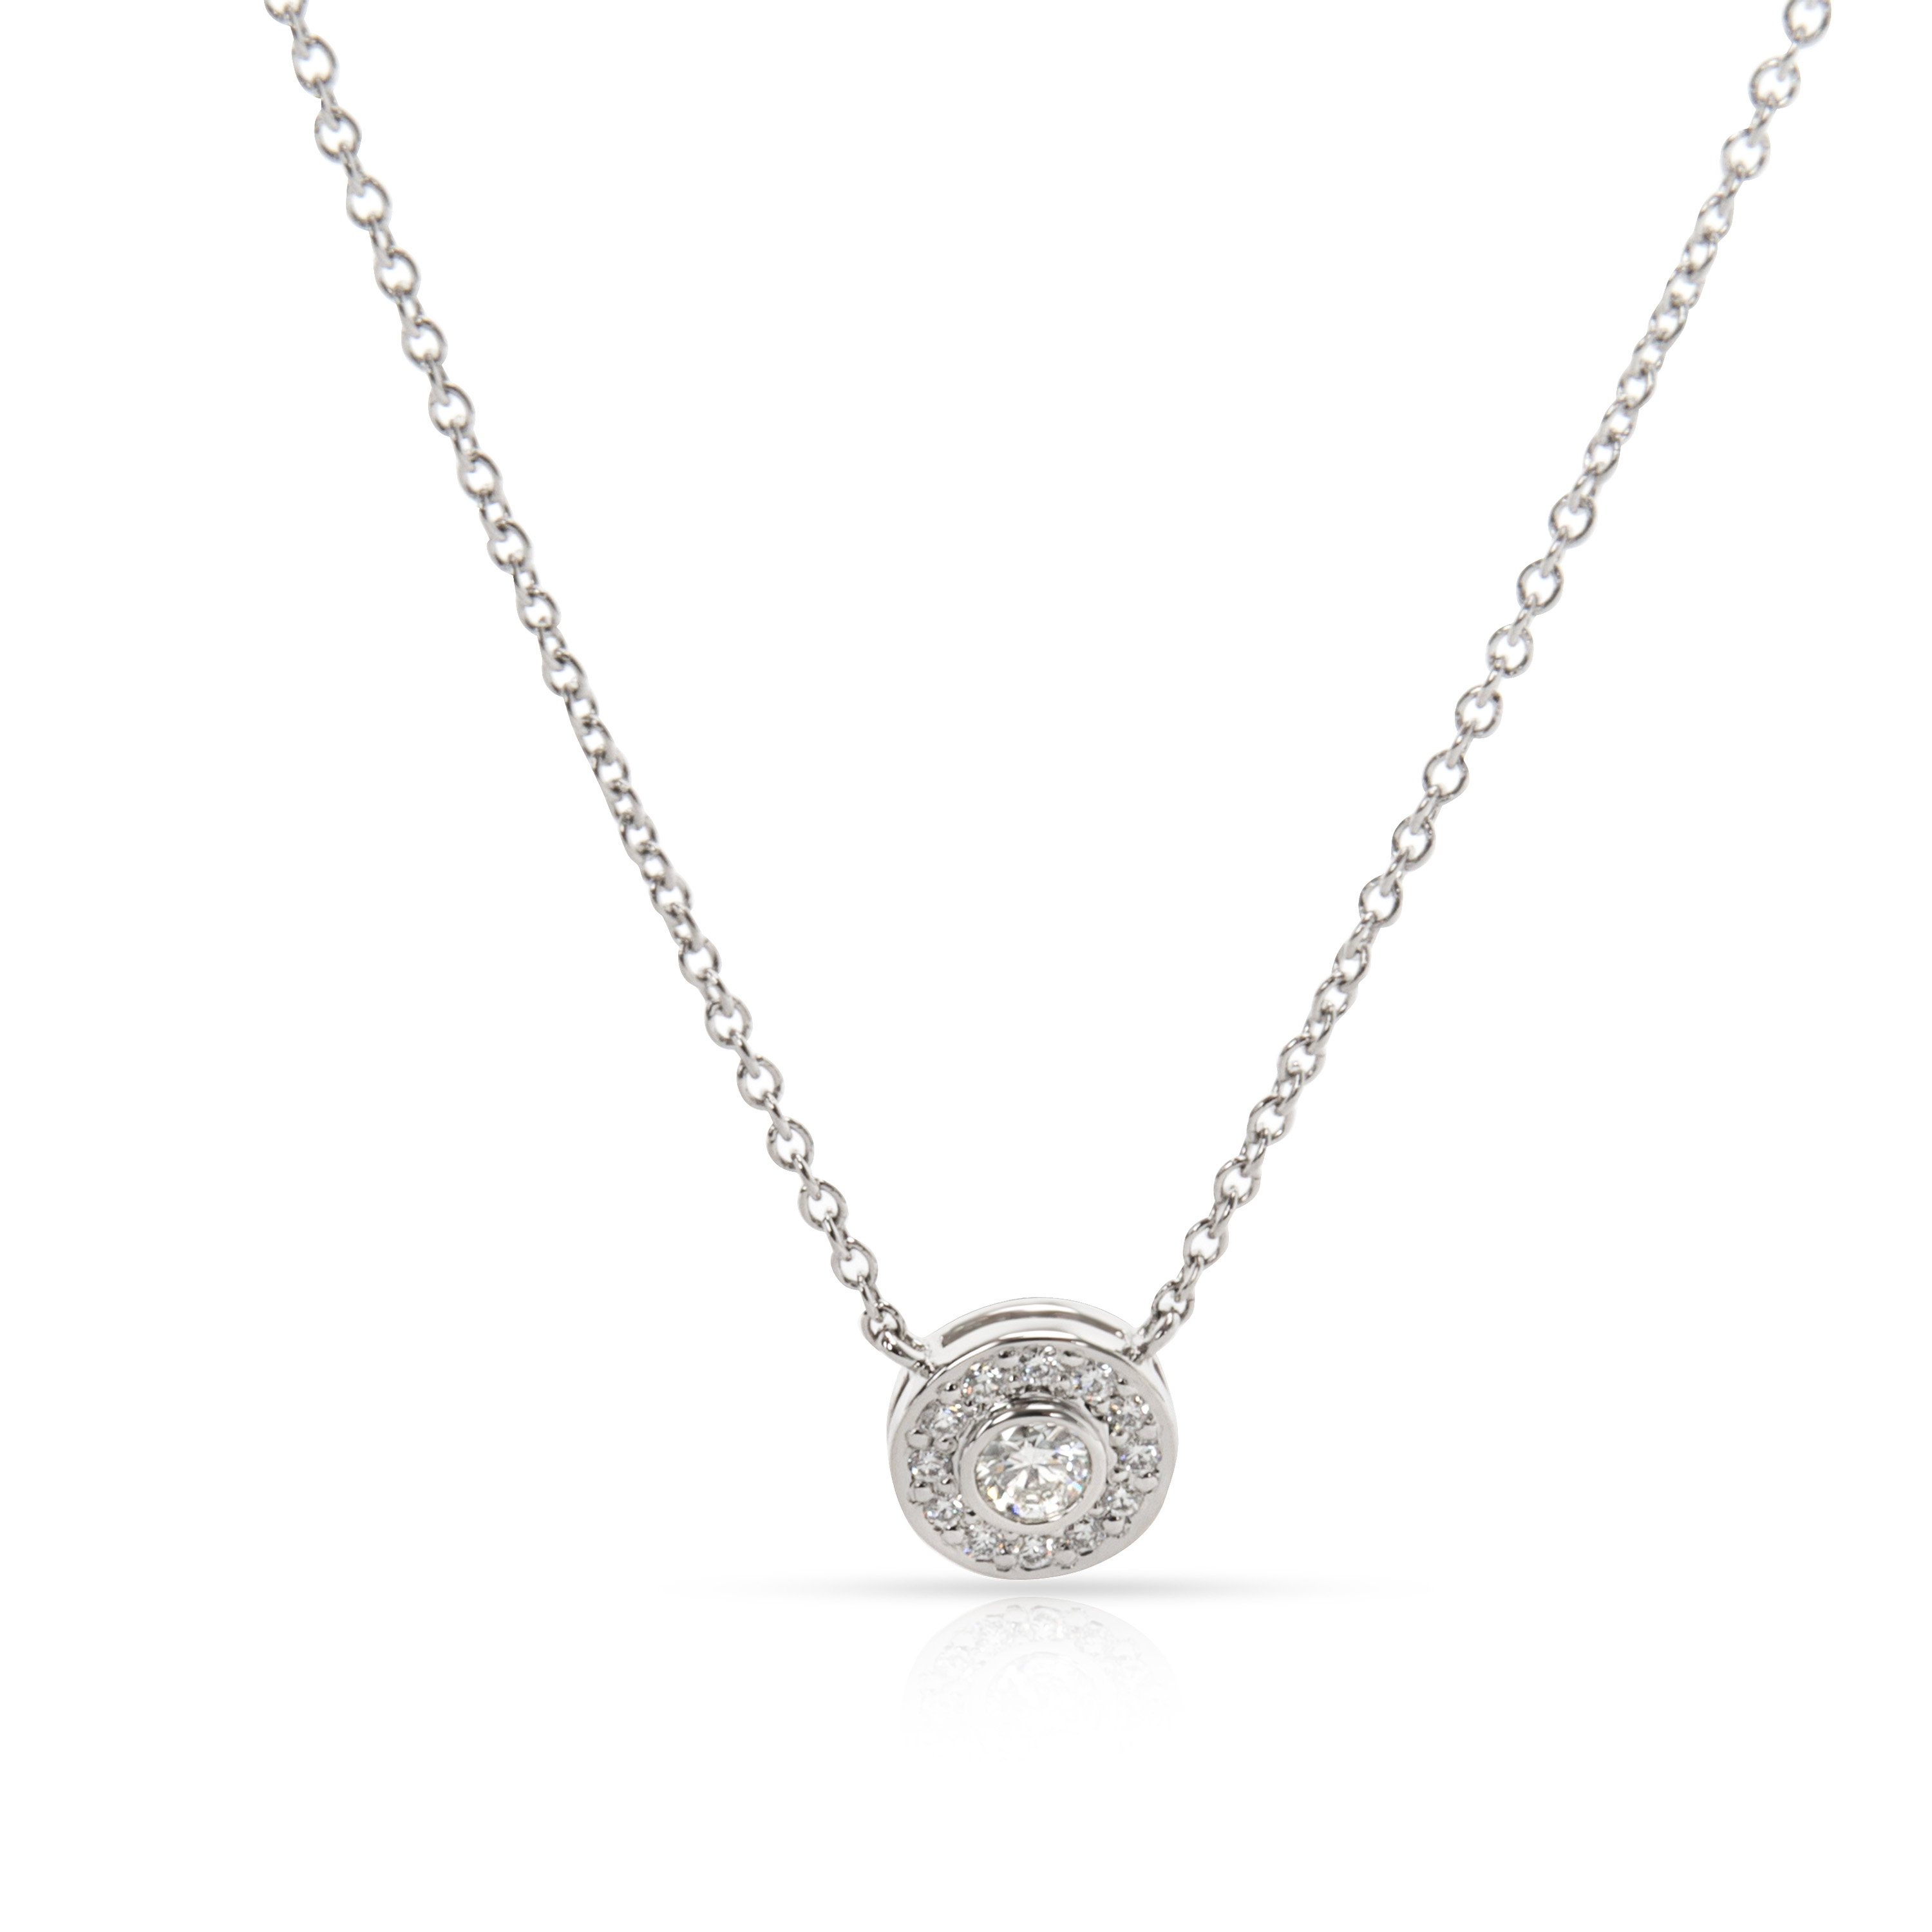 61ab8b4710a7e Details about Tiffany & Co. Circlet Diamond Necklace in Platinum (0.26 CTW)